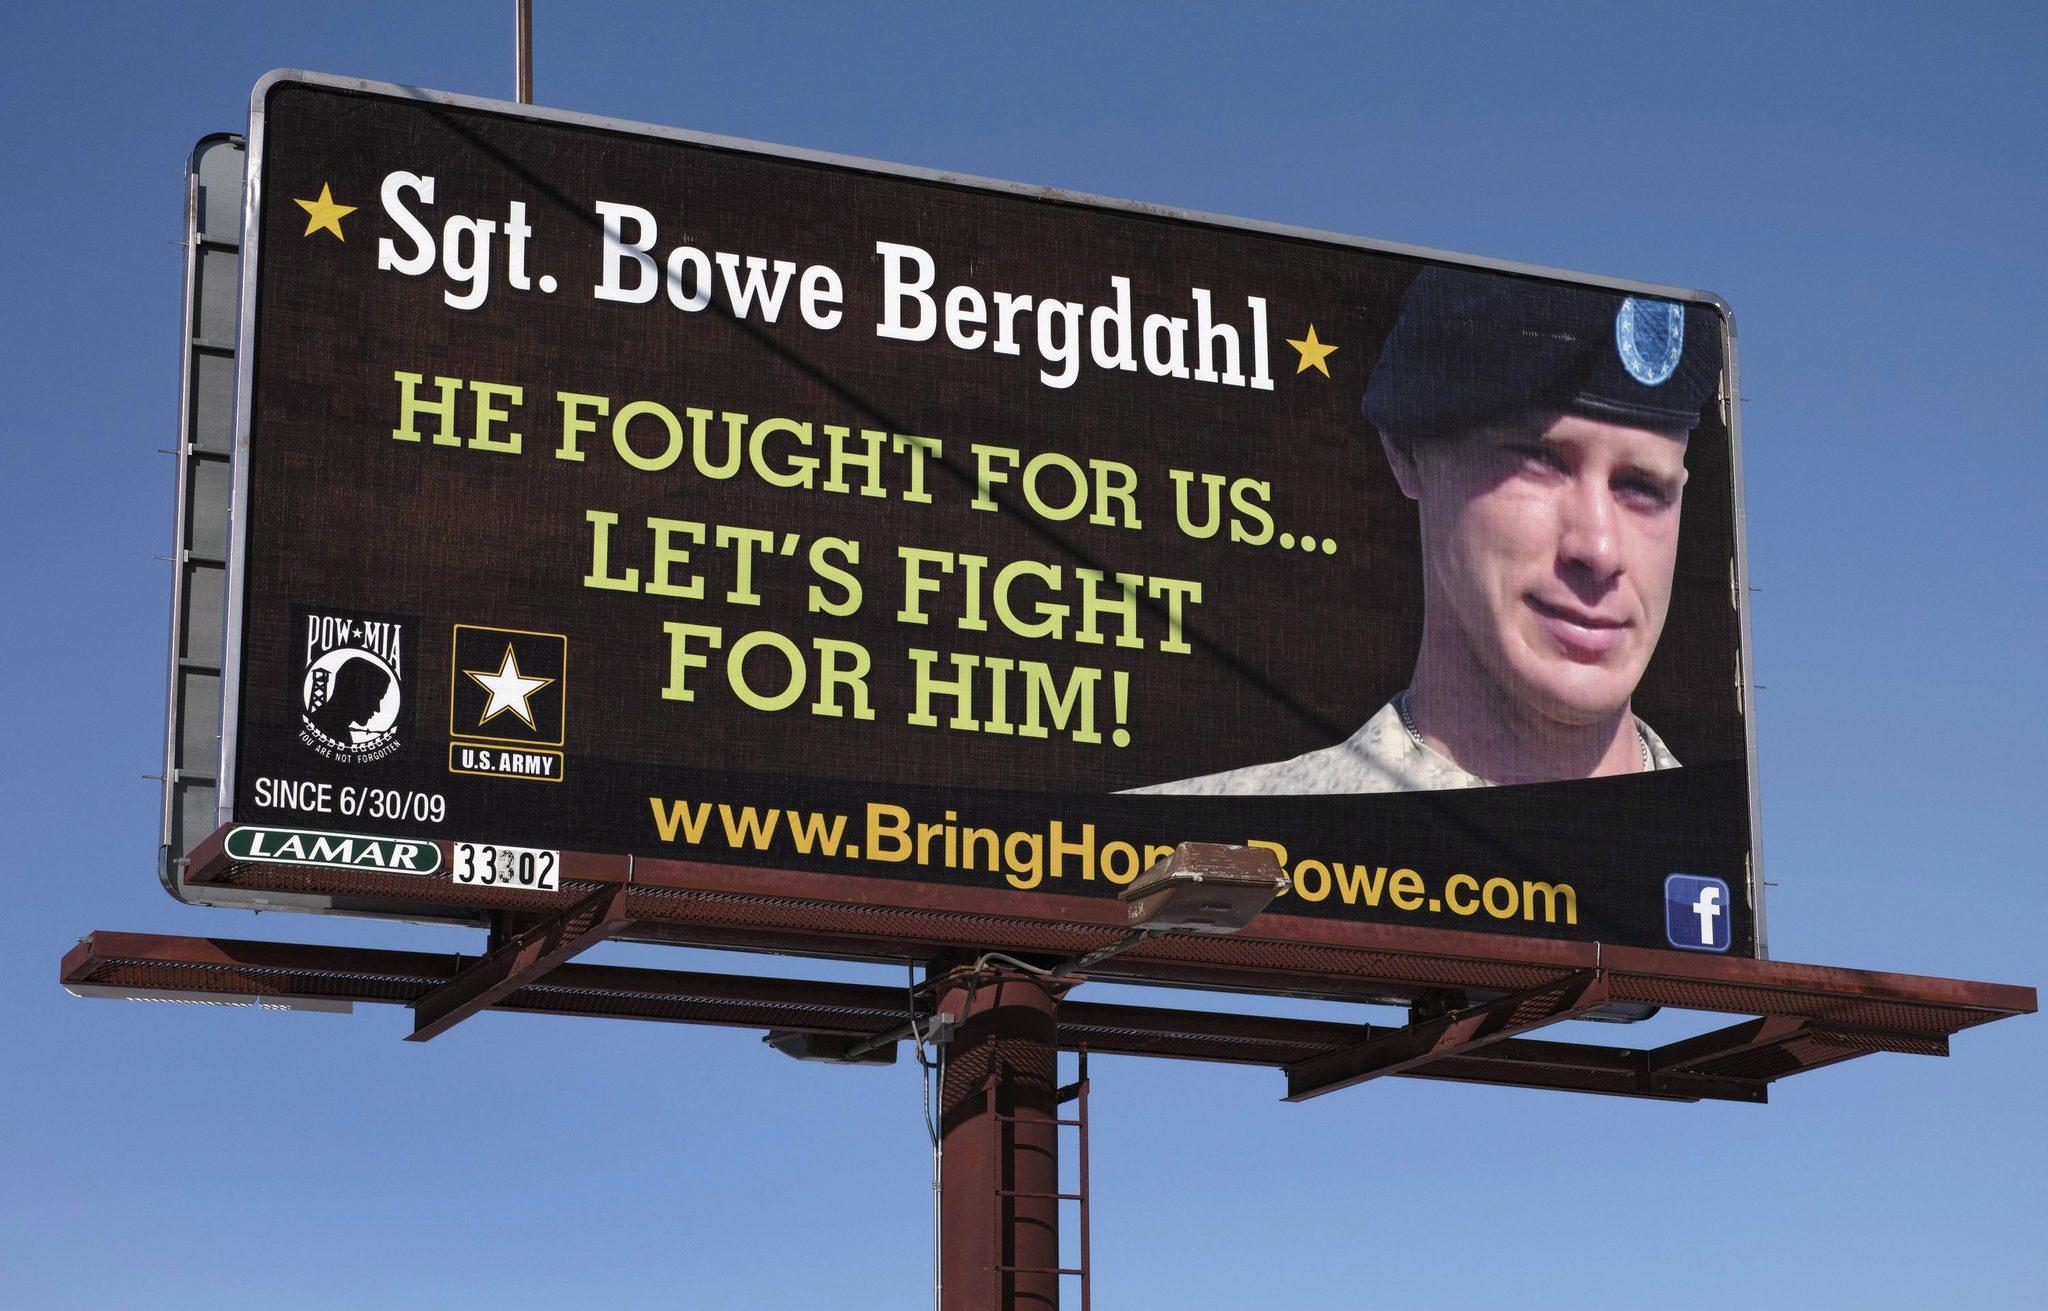 A billboard calling for the release of U.S. Army Sergeant Bowe Bergdahl, held for nearly five years by the Taliban after being captured in Afghanistan, is shown in this picture taken near Spokane, Washington.